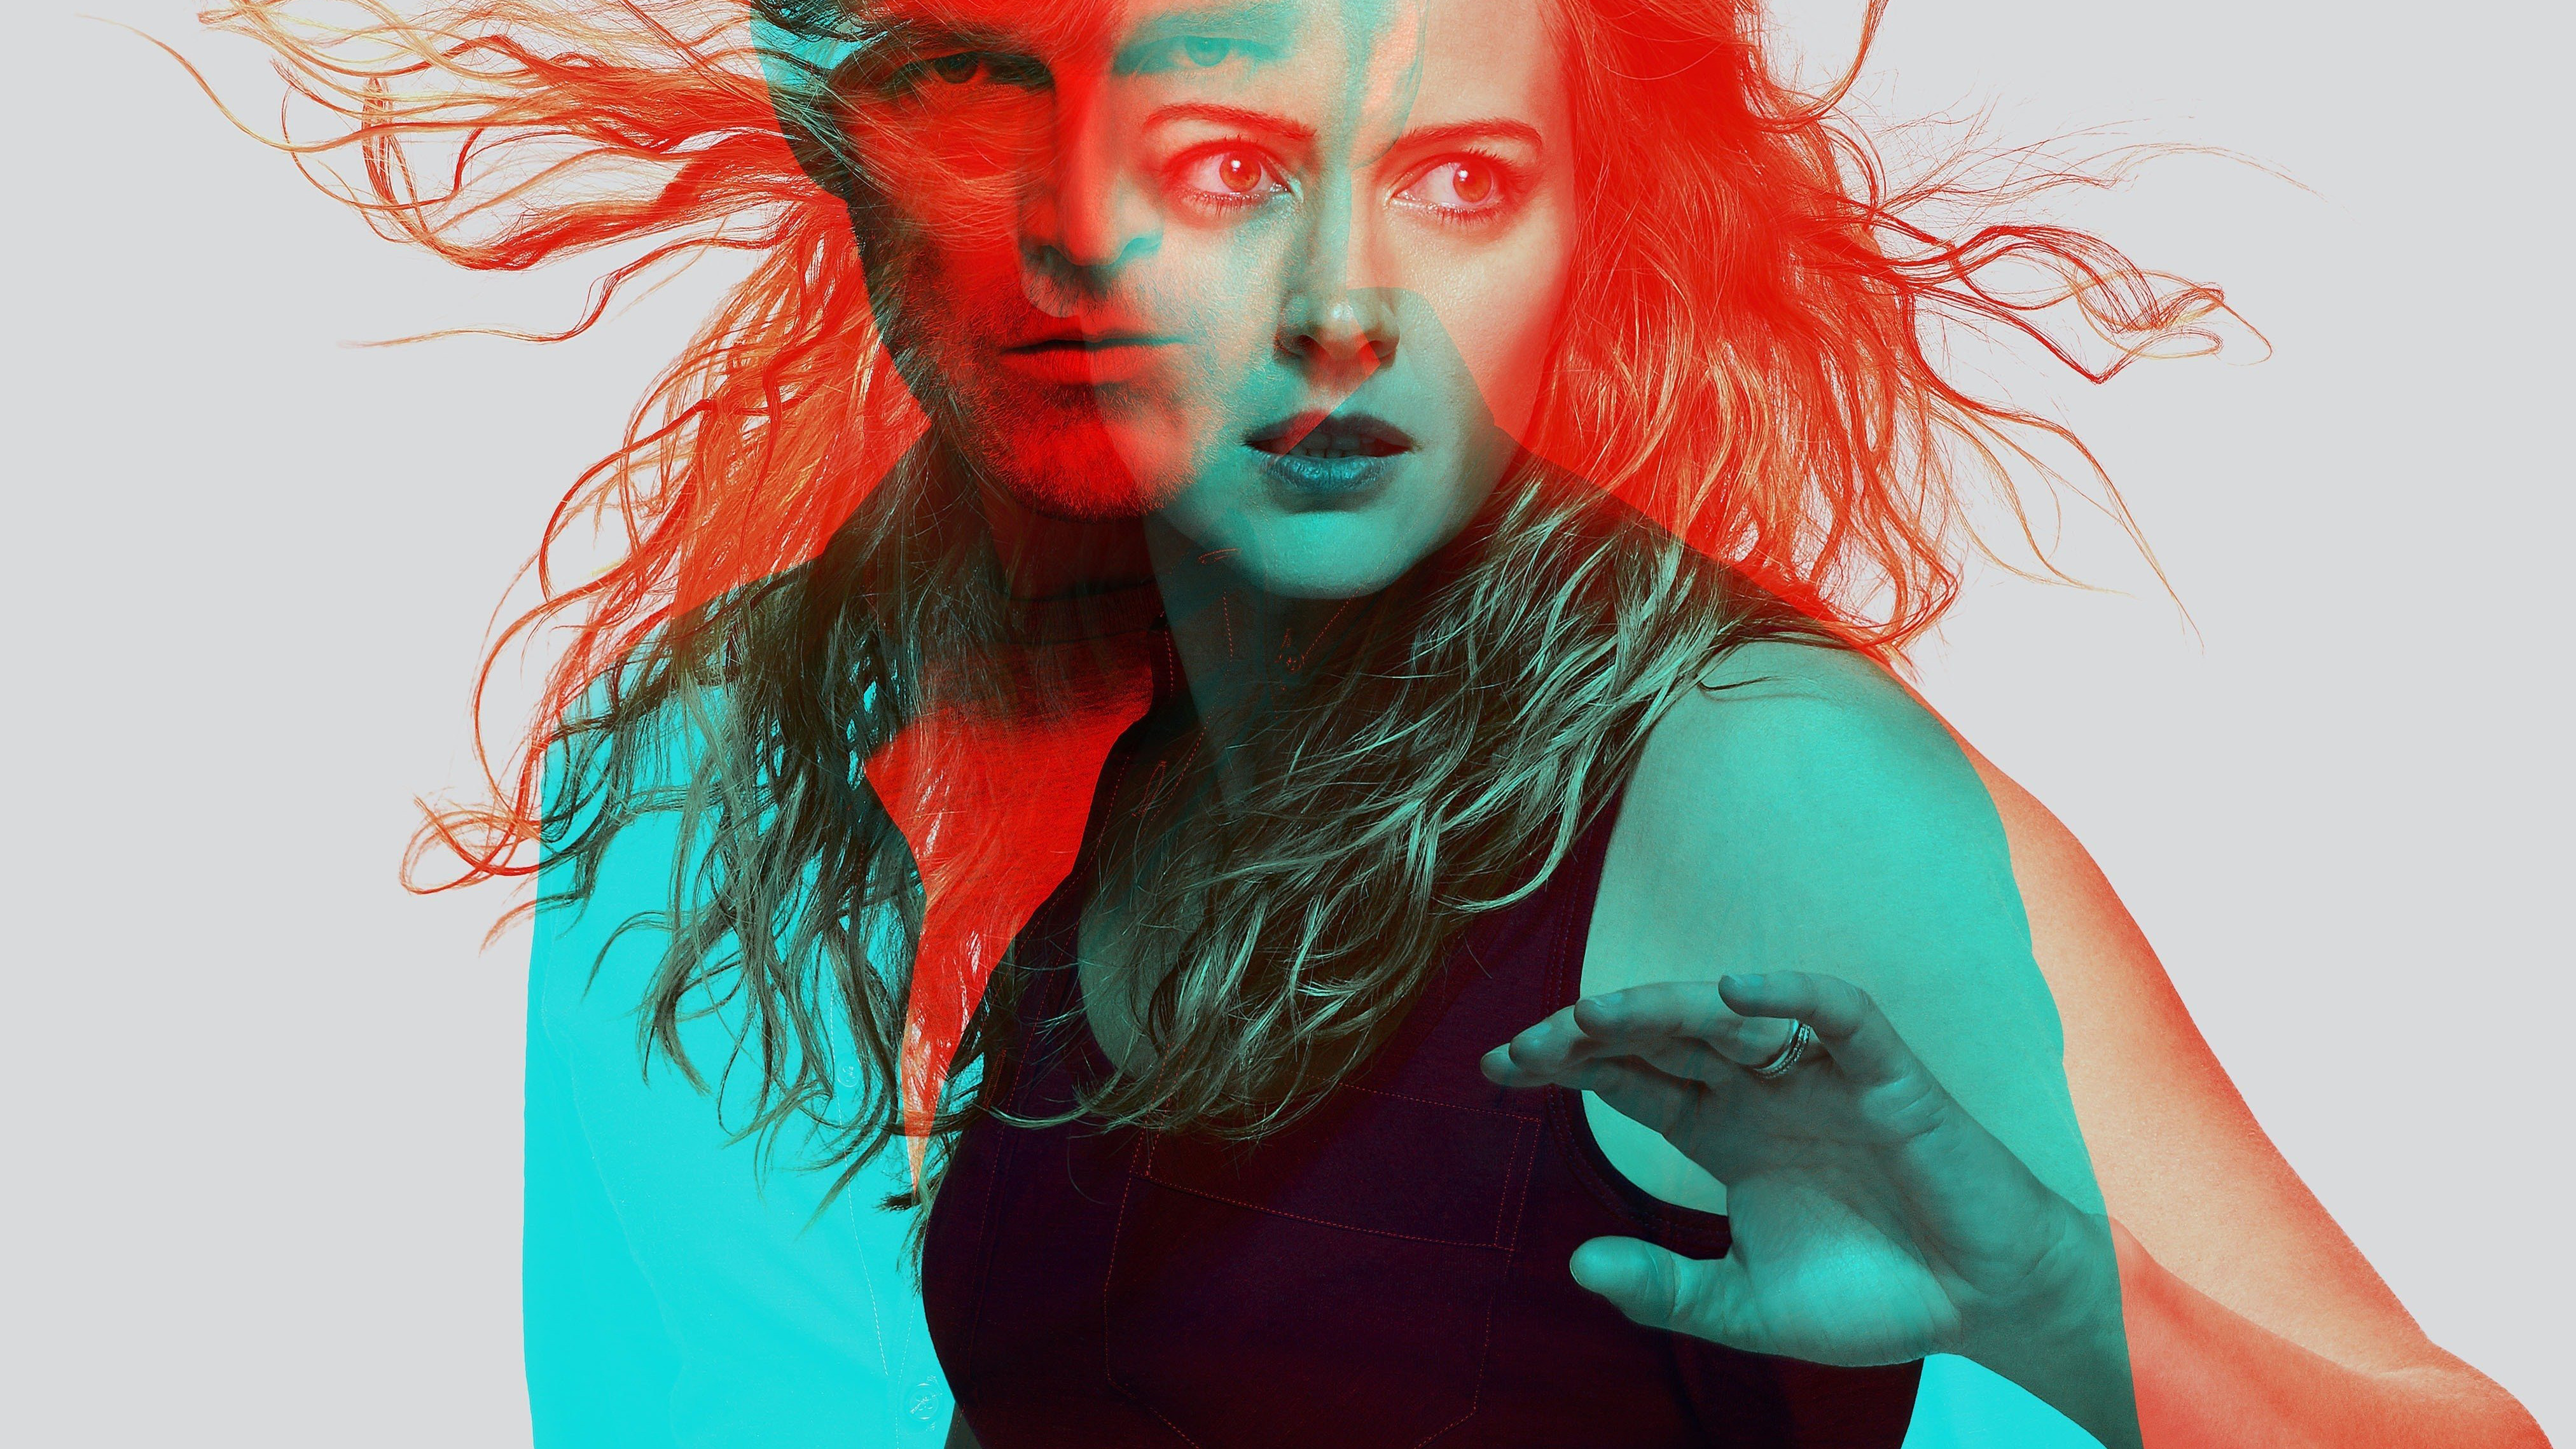 amy-acker-in-the-gifted-season-2-l2.jpg